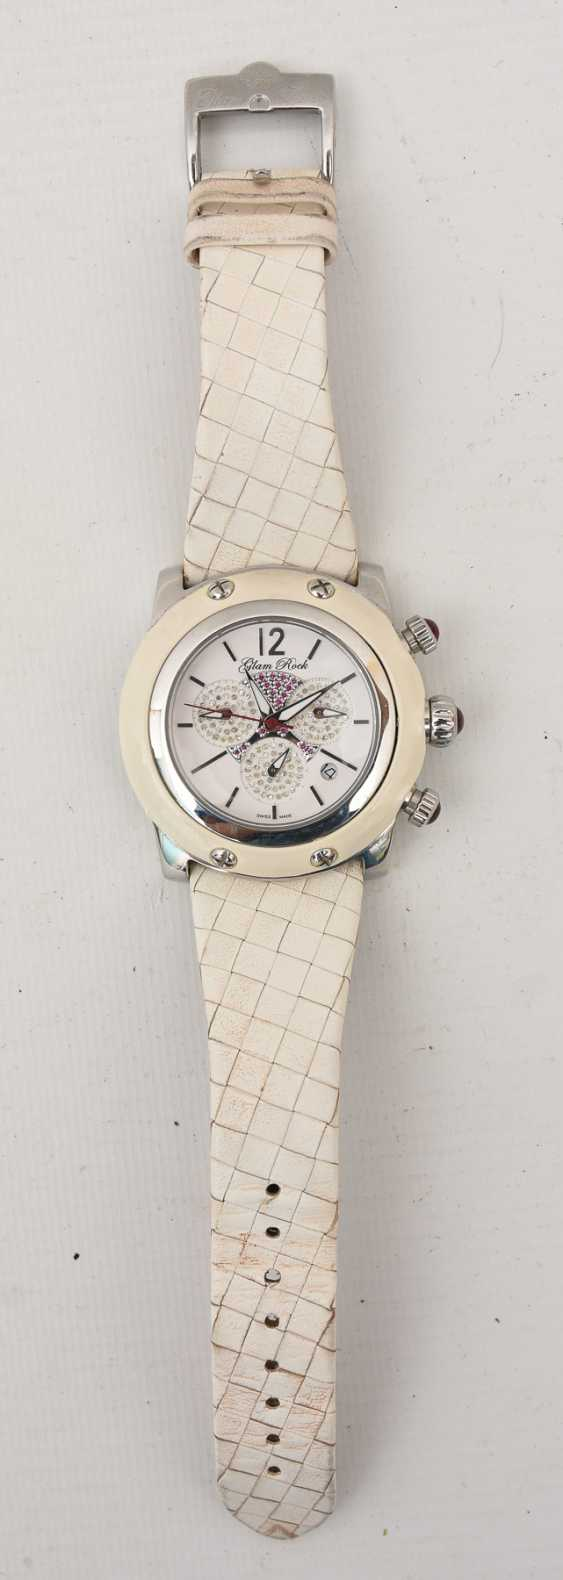 GLAM ROCK women's WATCH WHITE stainless steel/leather, 2000 - photo 1